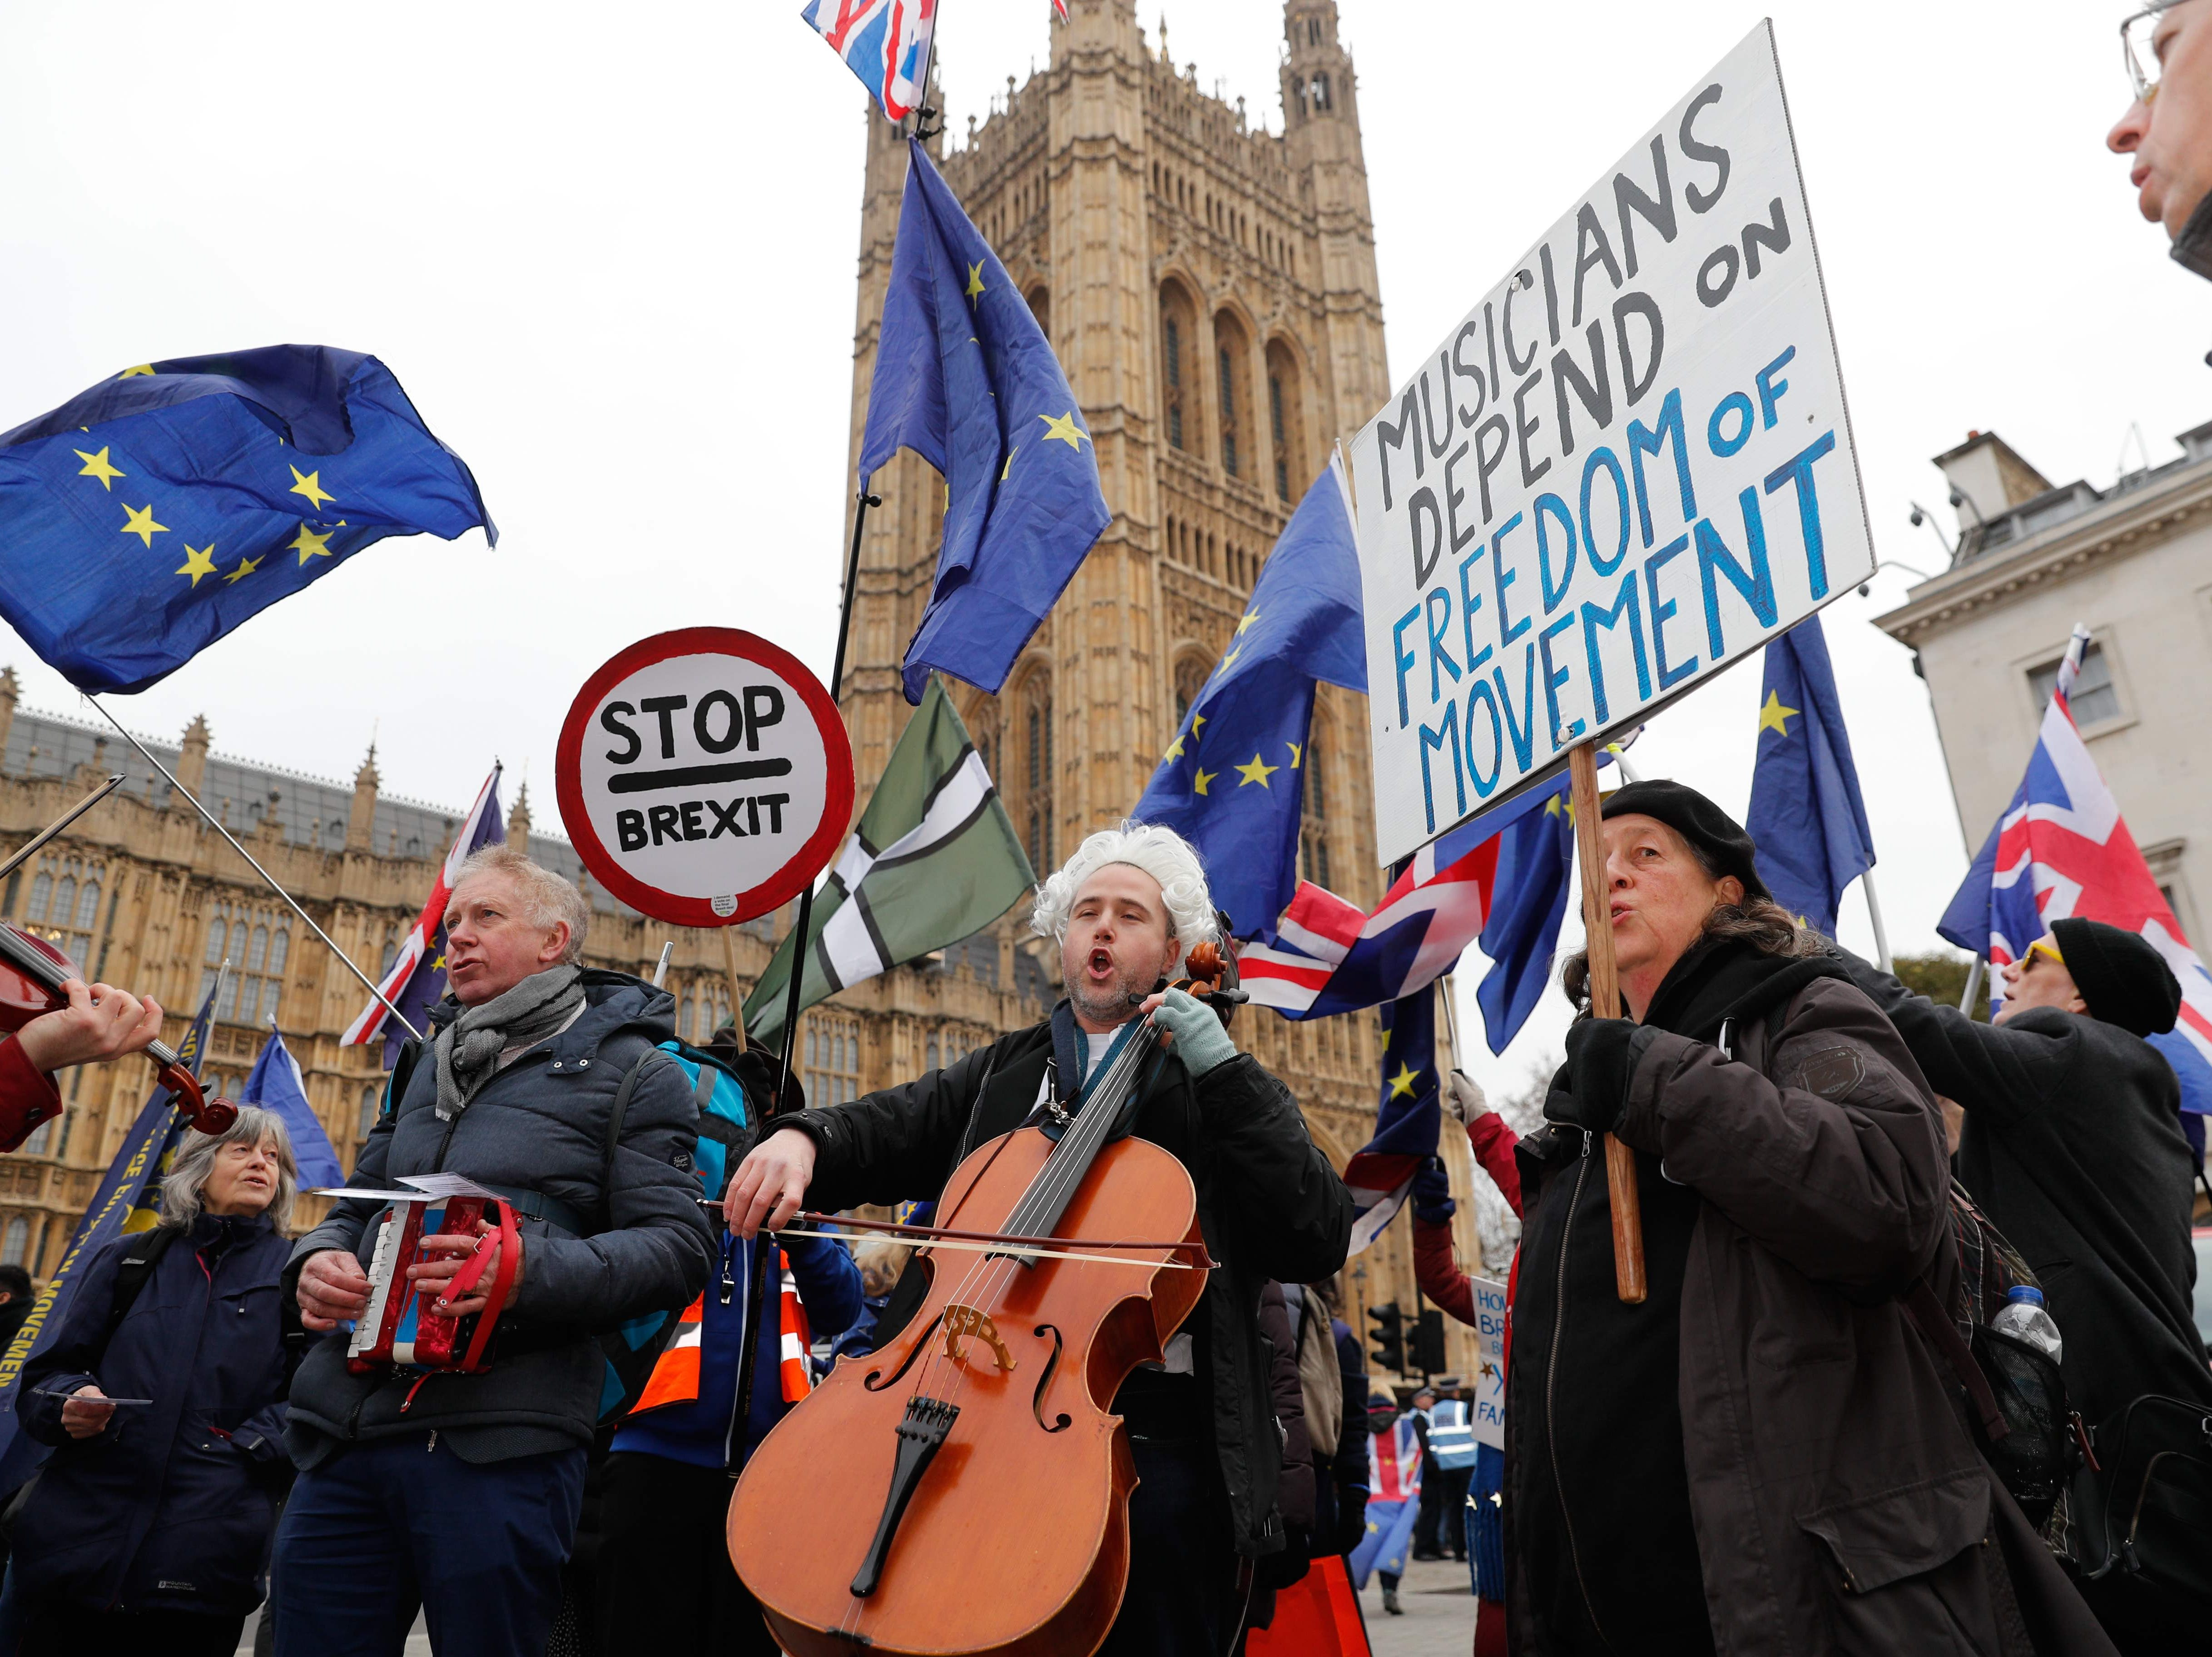 British-German musician Simon Wallfisch, center, plays the cello and sings with supporters and fellow musicians outside the Houses of Parliament in London on Jan. 10, 2019 during a performance to protest Britain's exit from the European Union (Brexit).  Classical singer and cellist Simon Wallfisch, whose family were persecuted by the Nazis, recently applied for and received German citizenship because of Brexit. Since the UK invoked Article 50 starting the countdown to Britain's exit from the European Union Simon and a group of supporters have once a month marched past the Houses of Parliament performing Beethoven's Ode to Joy as a musical protest against Brexit.